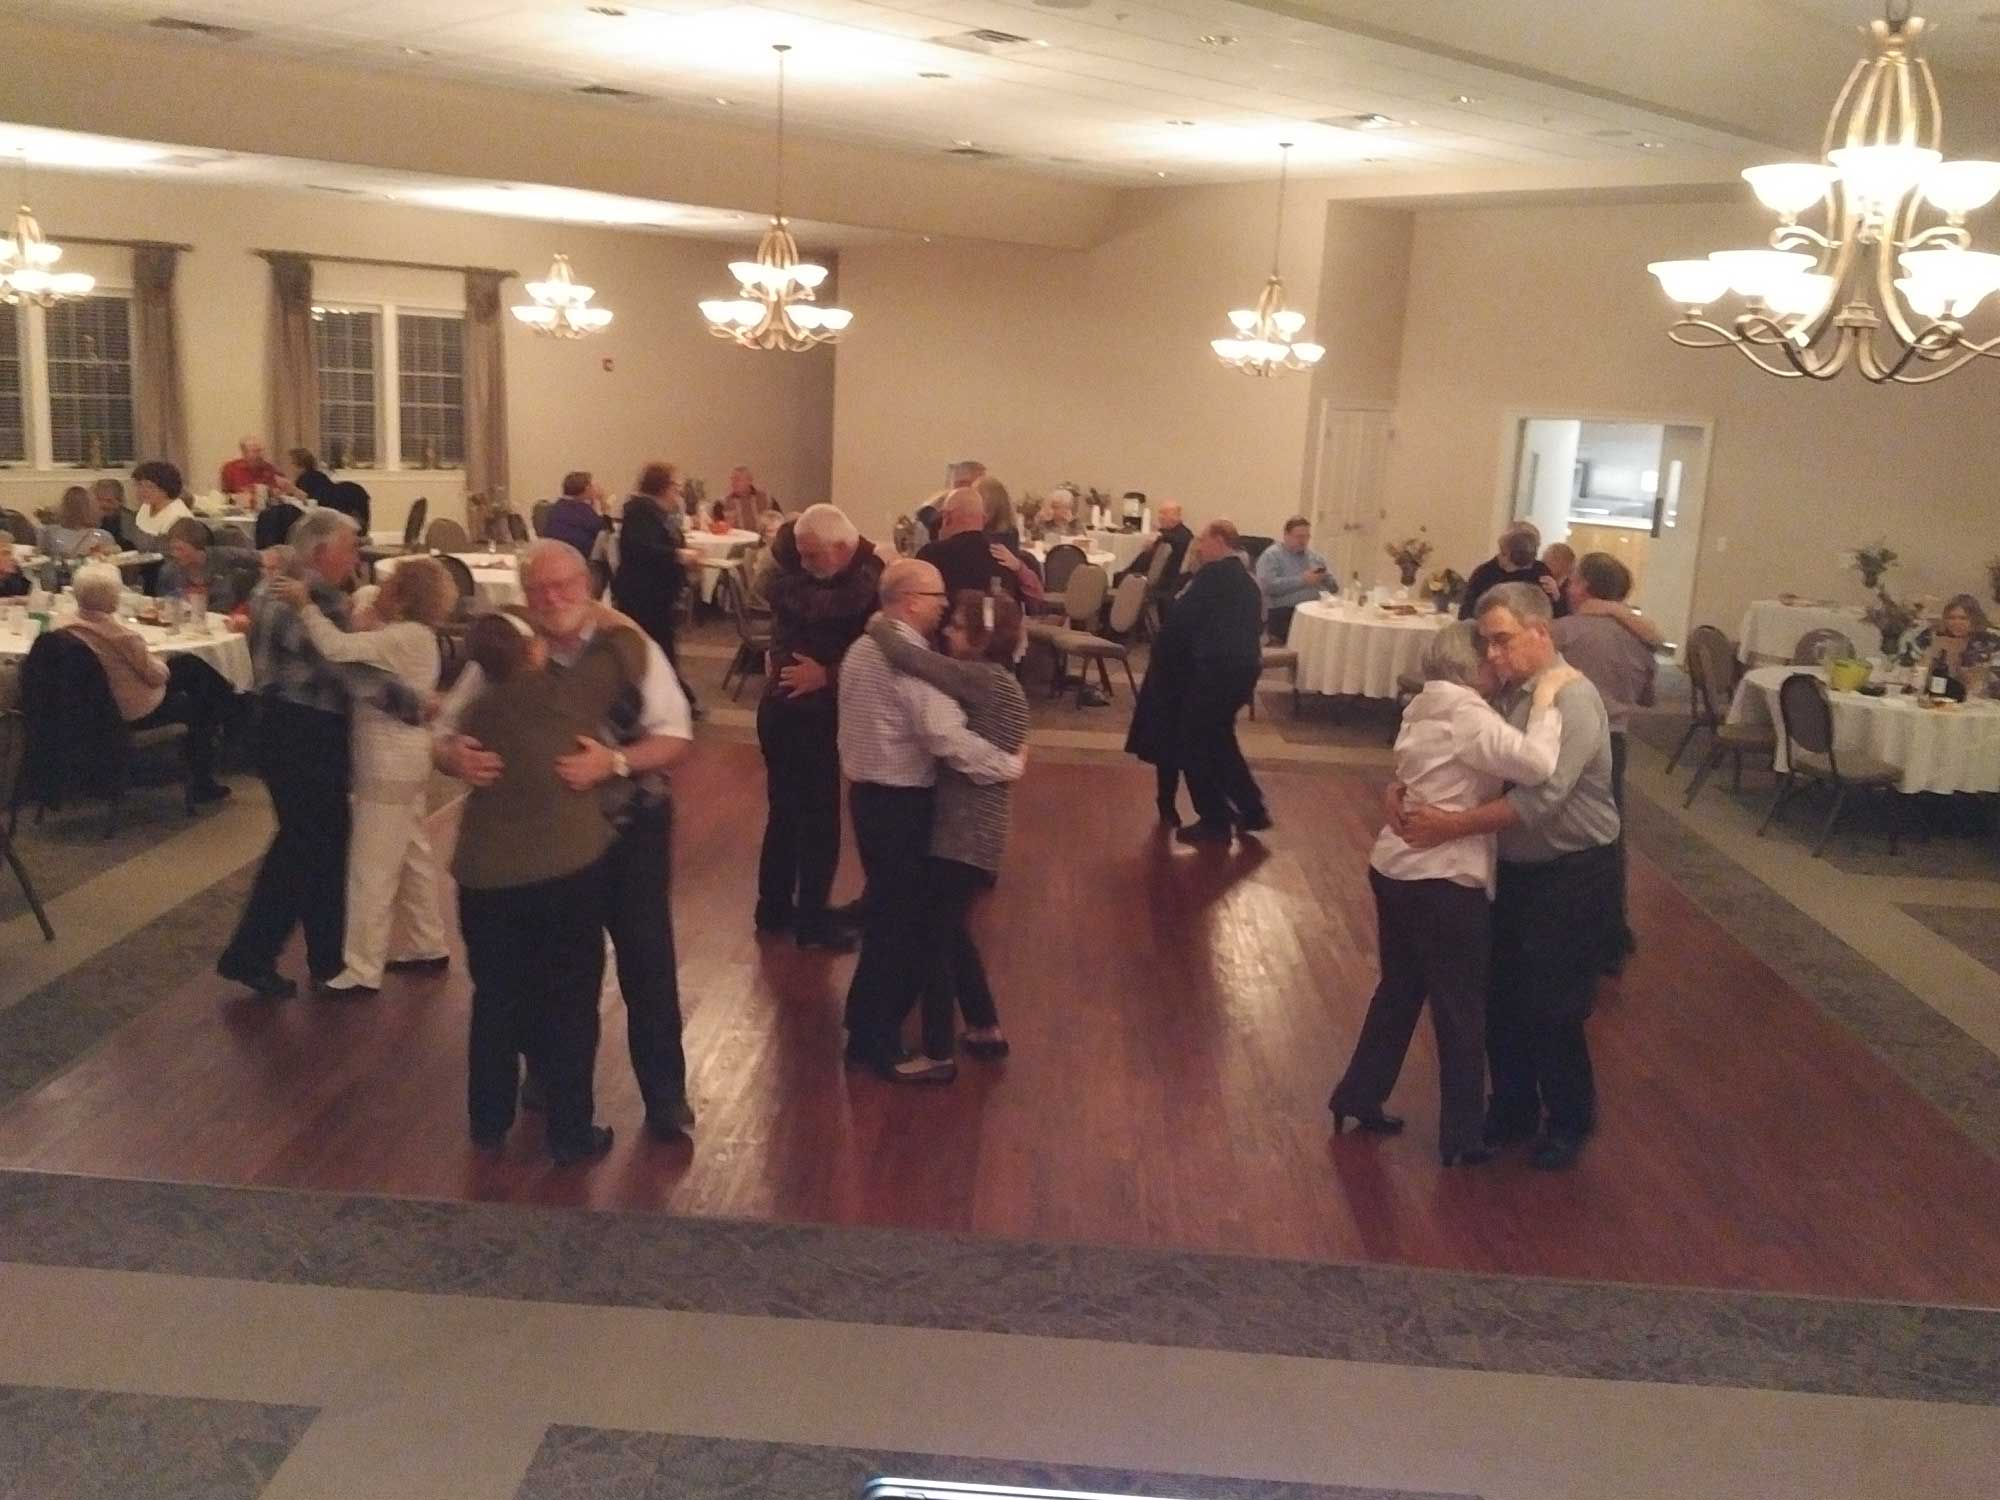 Times Gone By Entertainment is a DJ with a wide range of music, trivia, and games for your senior center party, live entertainment, boombox bingo party, weddings, and reunions in the Reading, Lebanon, Lancaster, and Allentown PA areas.